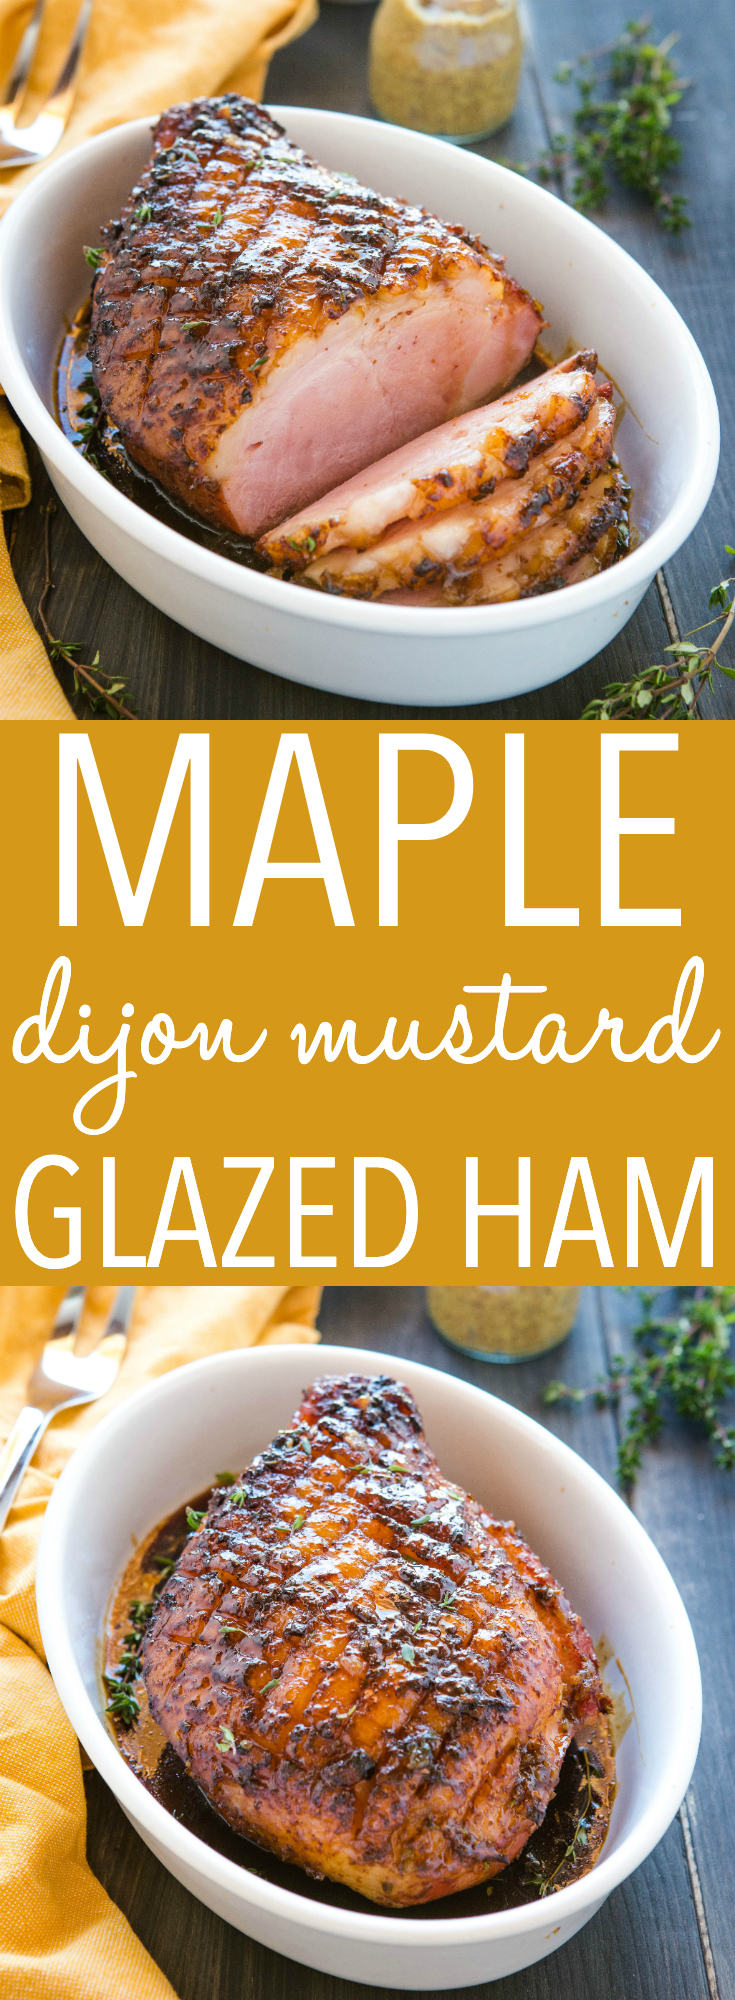 Maple Glazed Ham is the perfect holiday ham recipe with a simple sweet and tangy dijon mustard ham glaze,  maple syrup, and fresh herbs. Recipe from thebusybaker.ca! #ham #easter #maple #dijon #mustard #sweet #glaze #ovenroasted #familydinner #pork via @busybakerblog